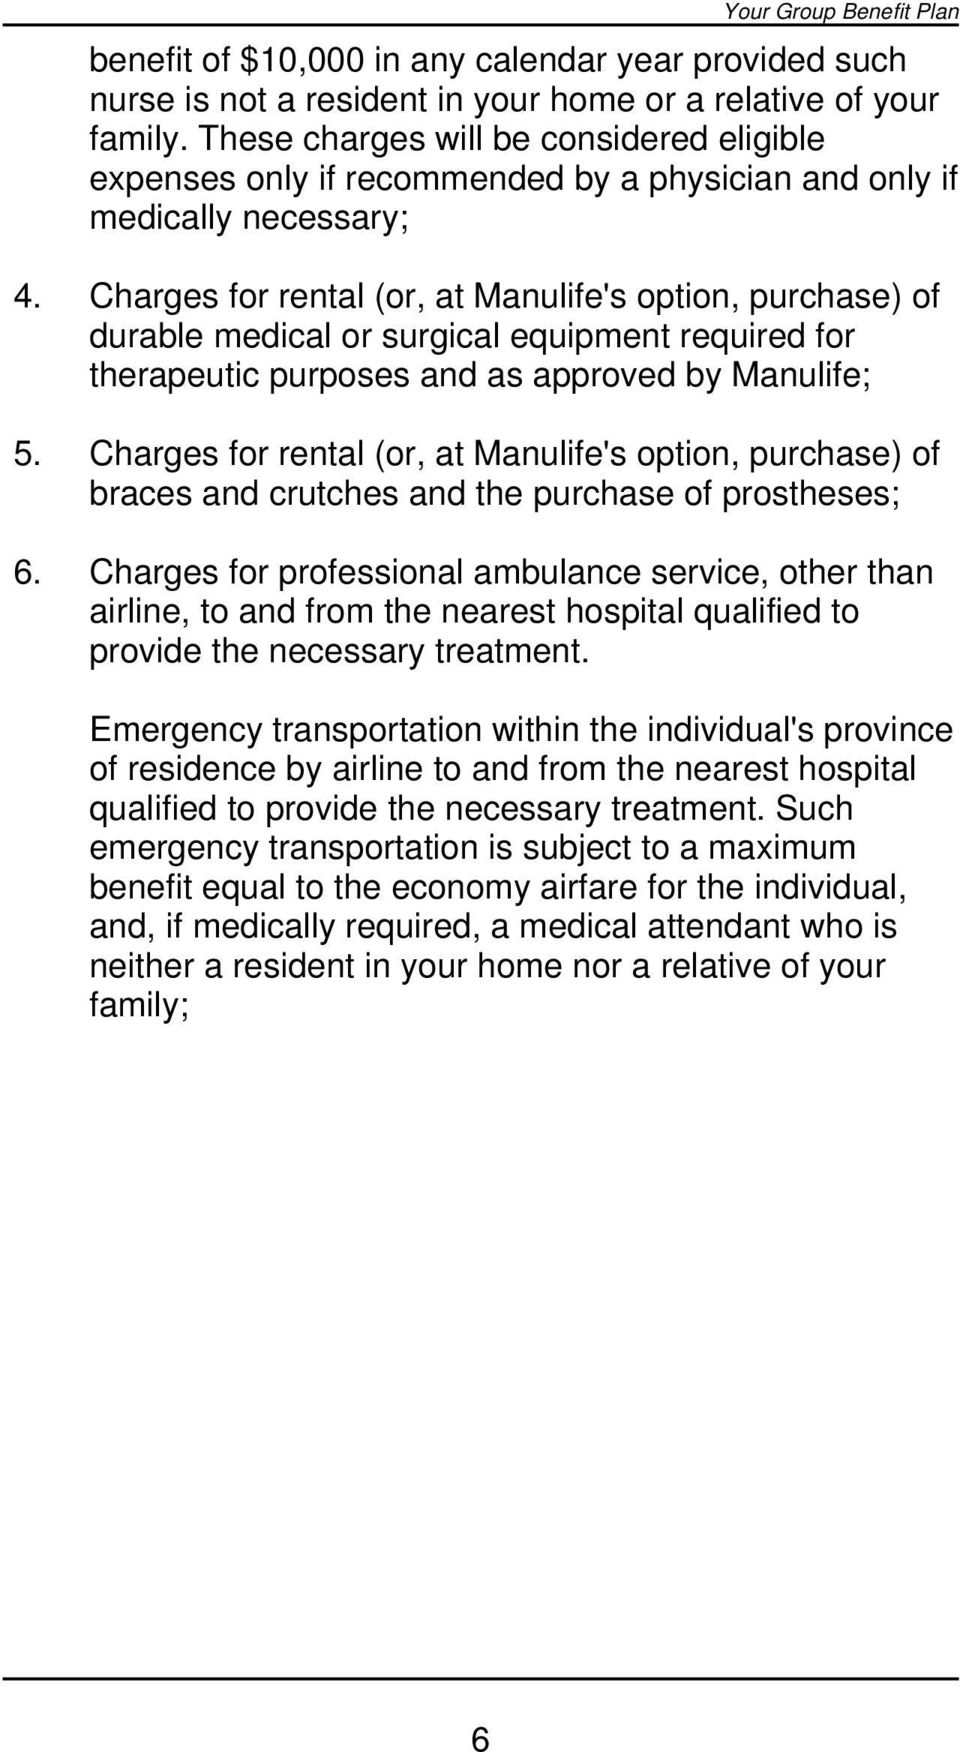 Charges for rental (or, at Manulife's option, purchase) of durable medical or surgical equipment required for therapeutic purposes and as approved by Manulife; 5.